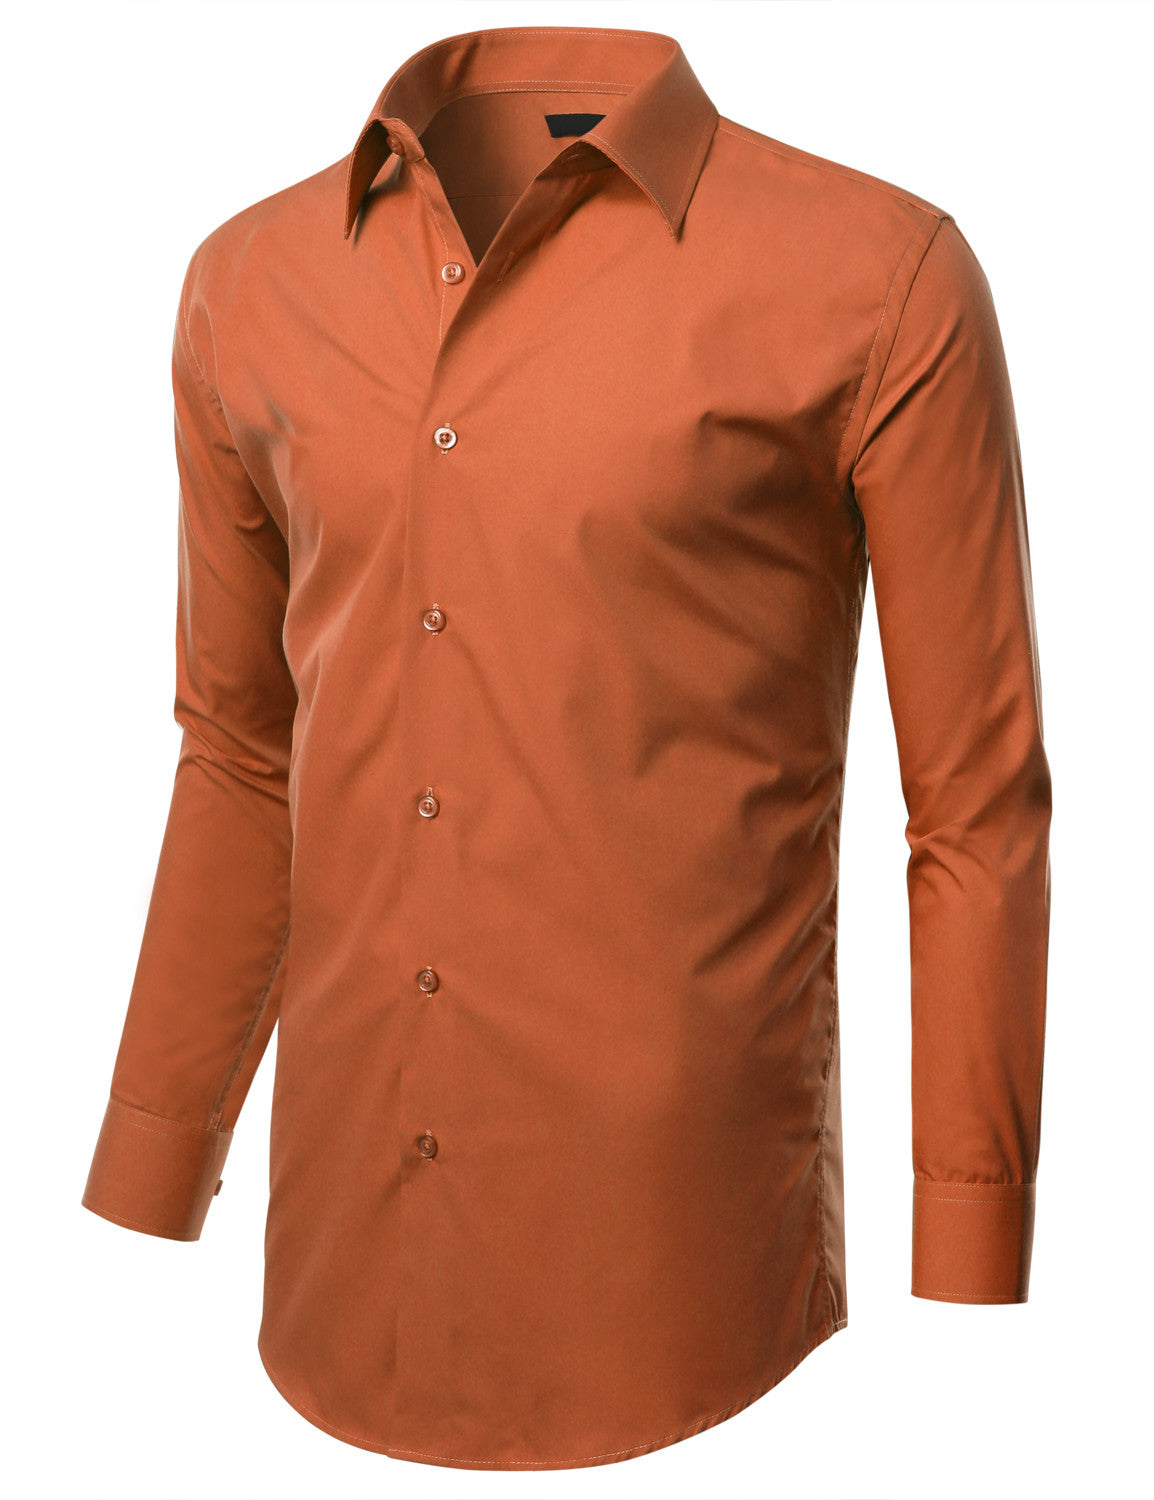 TC12ORANGE Orange Slim Fit Dress Shirt w/ Reversible Cuff (Big & Tall Available)- MONDAYSUIT